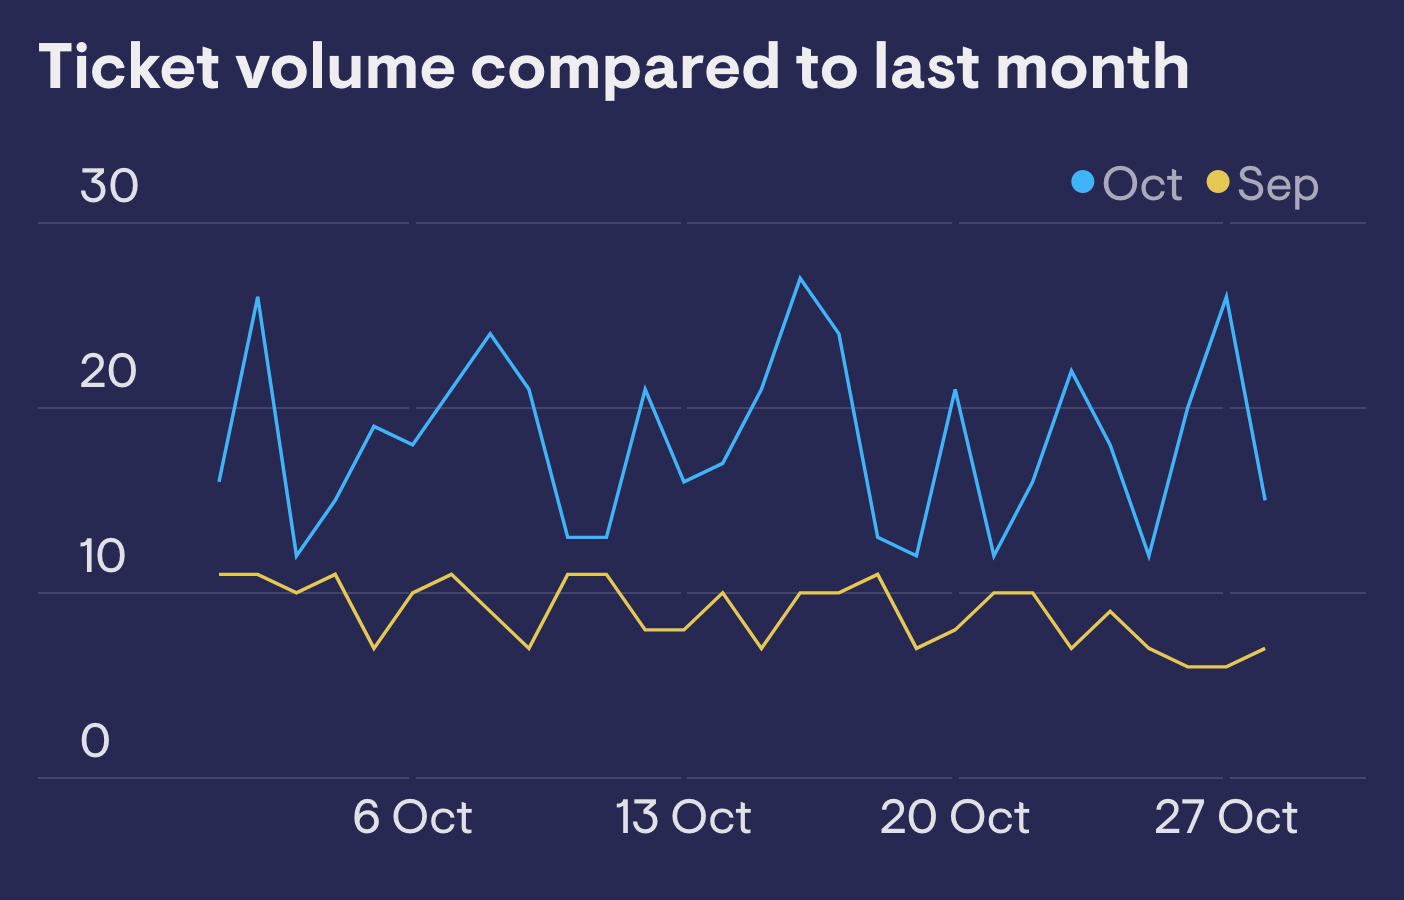 Ticket volume compared to last month